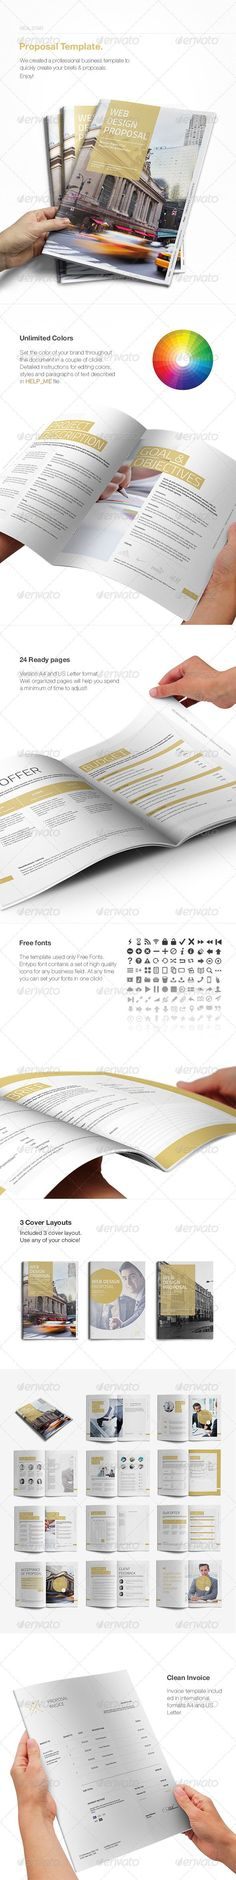 Commercial Proposal Format Amazing Commercial Proposal Template #09  Commercial Proposal  Pinterest .